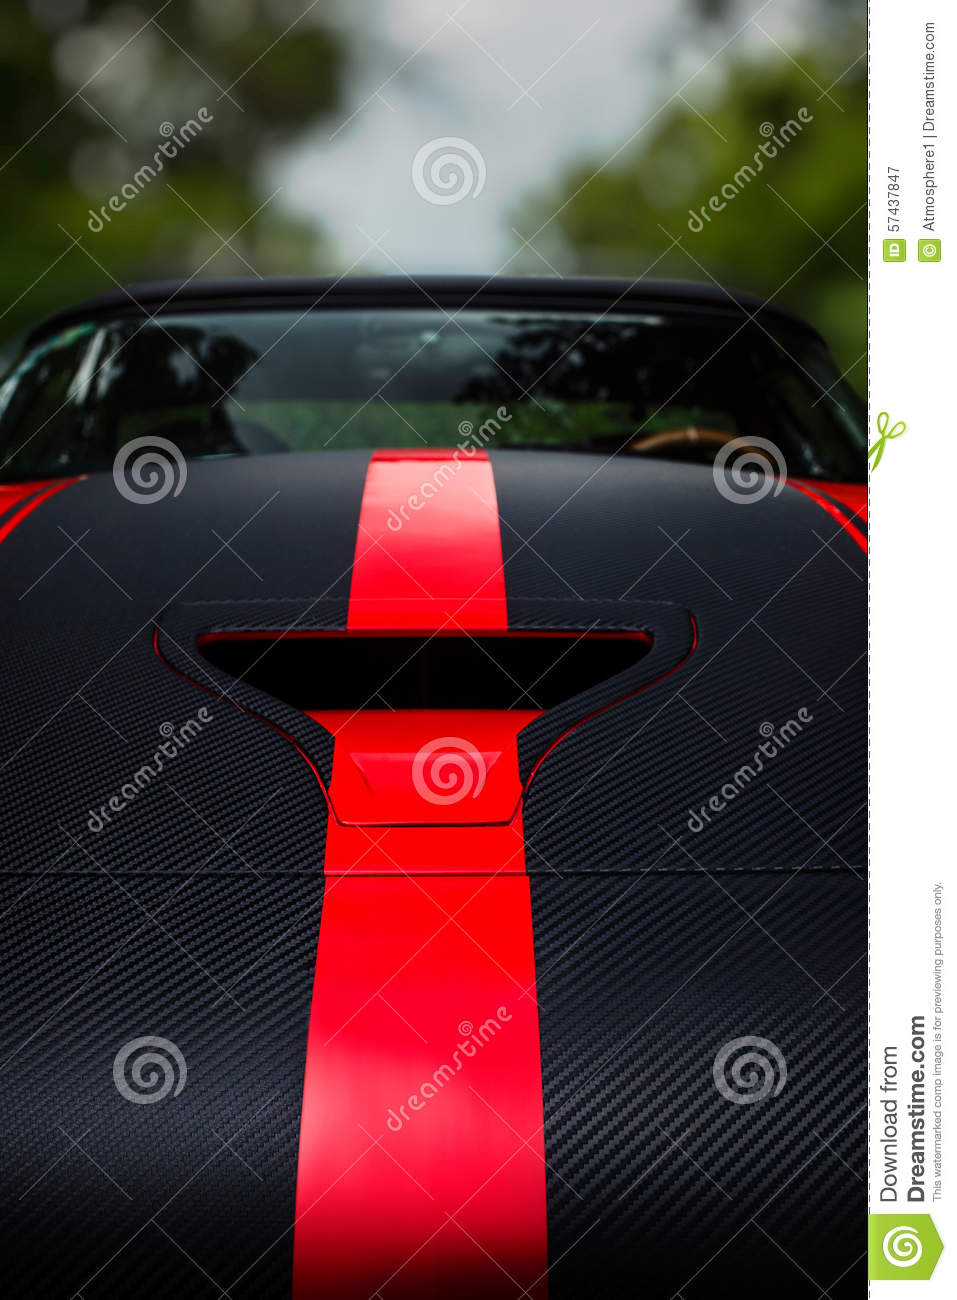 Detail of a dark racing sport car with bonnet scoop vent and red stripes